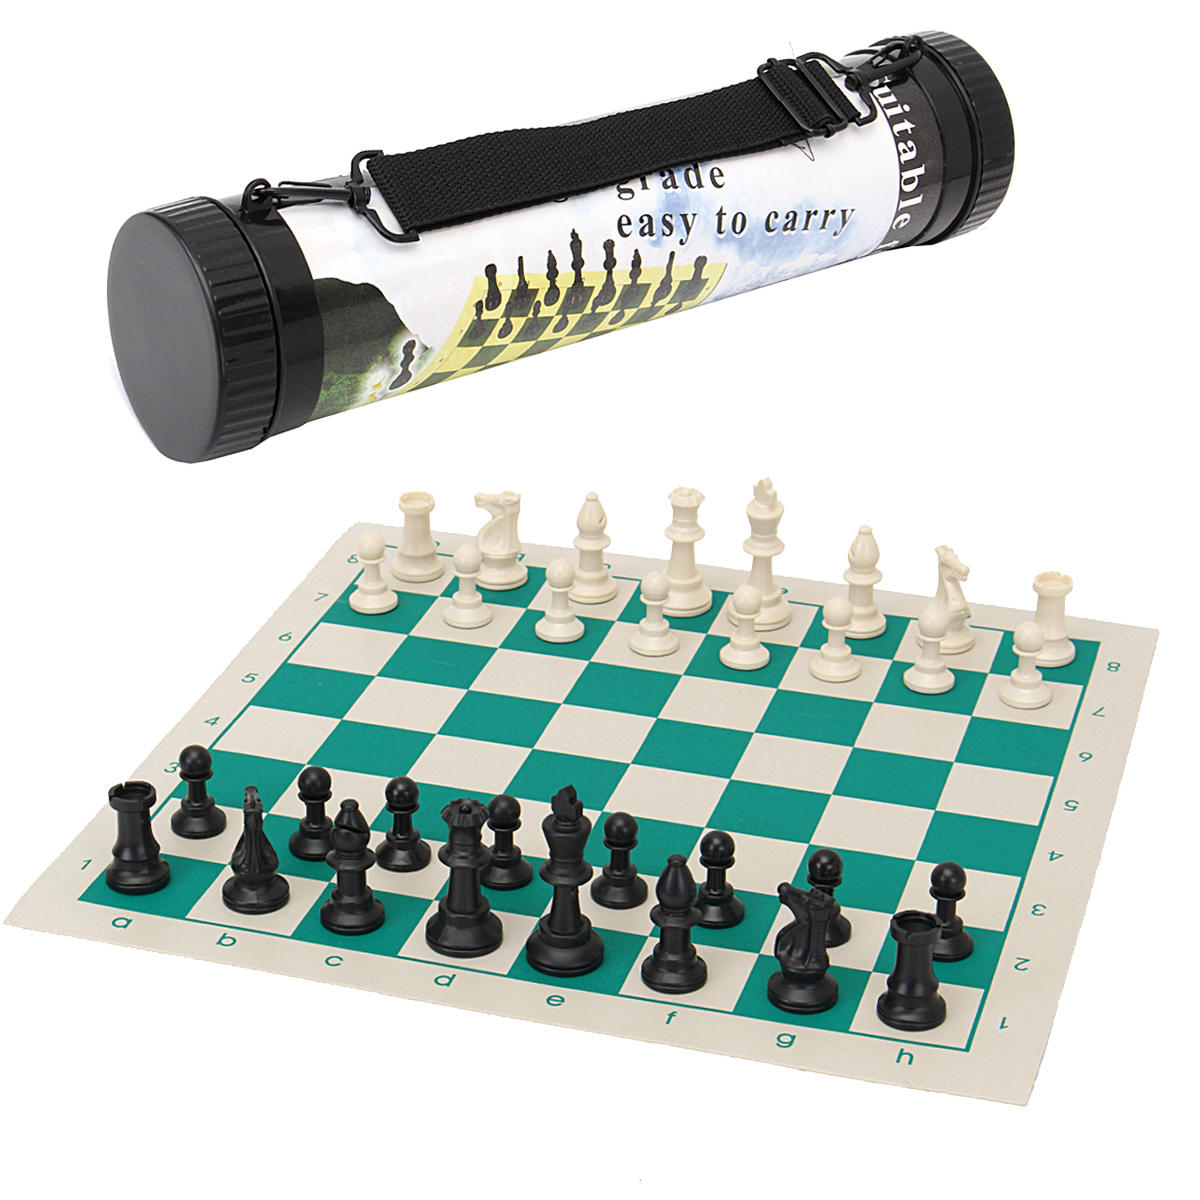 High-Class good quality chess set. island wide delivery. Chess Roll Set Child's Intelligence Game. Best for school children.